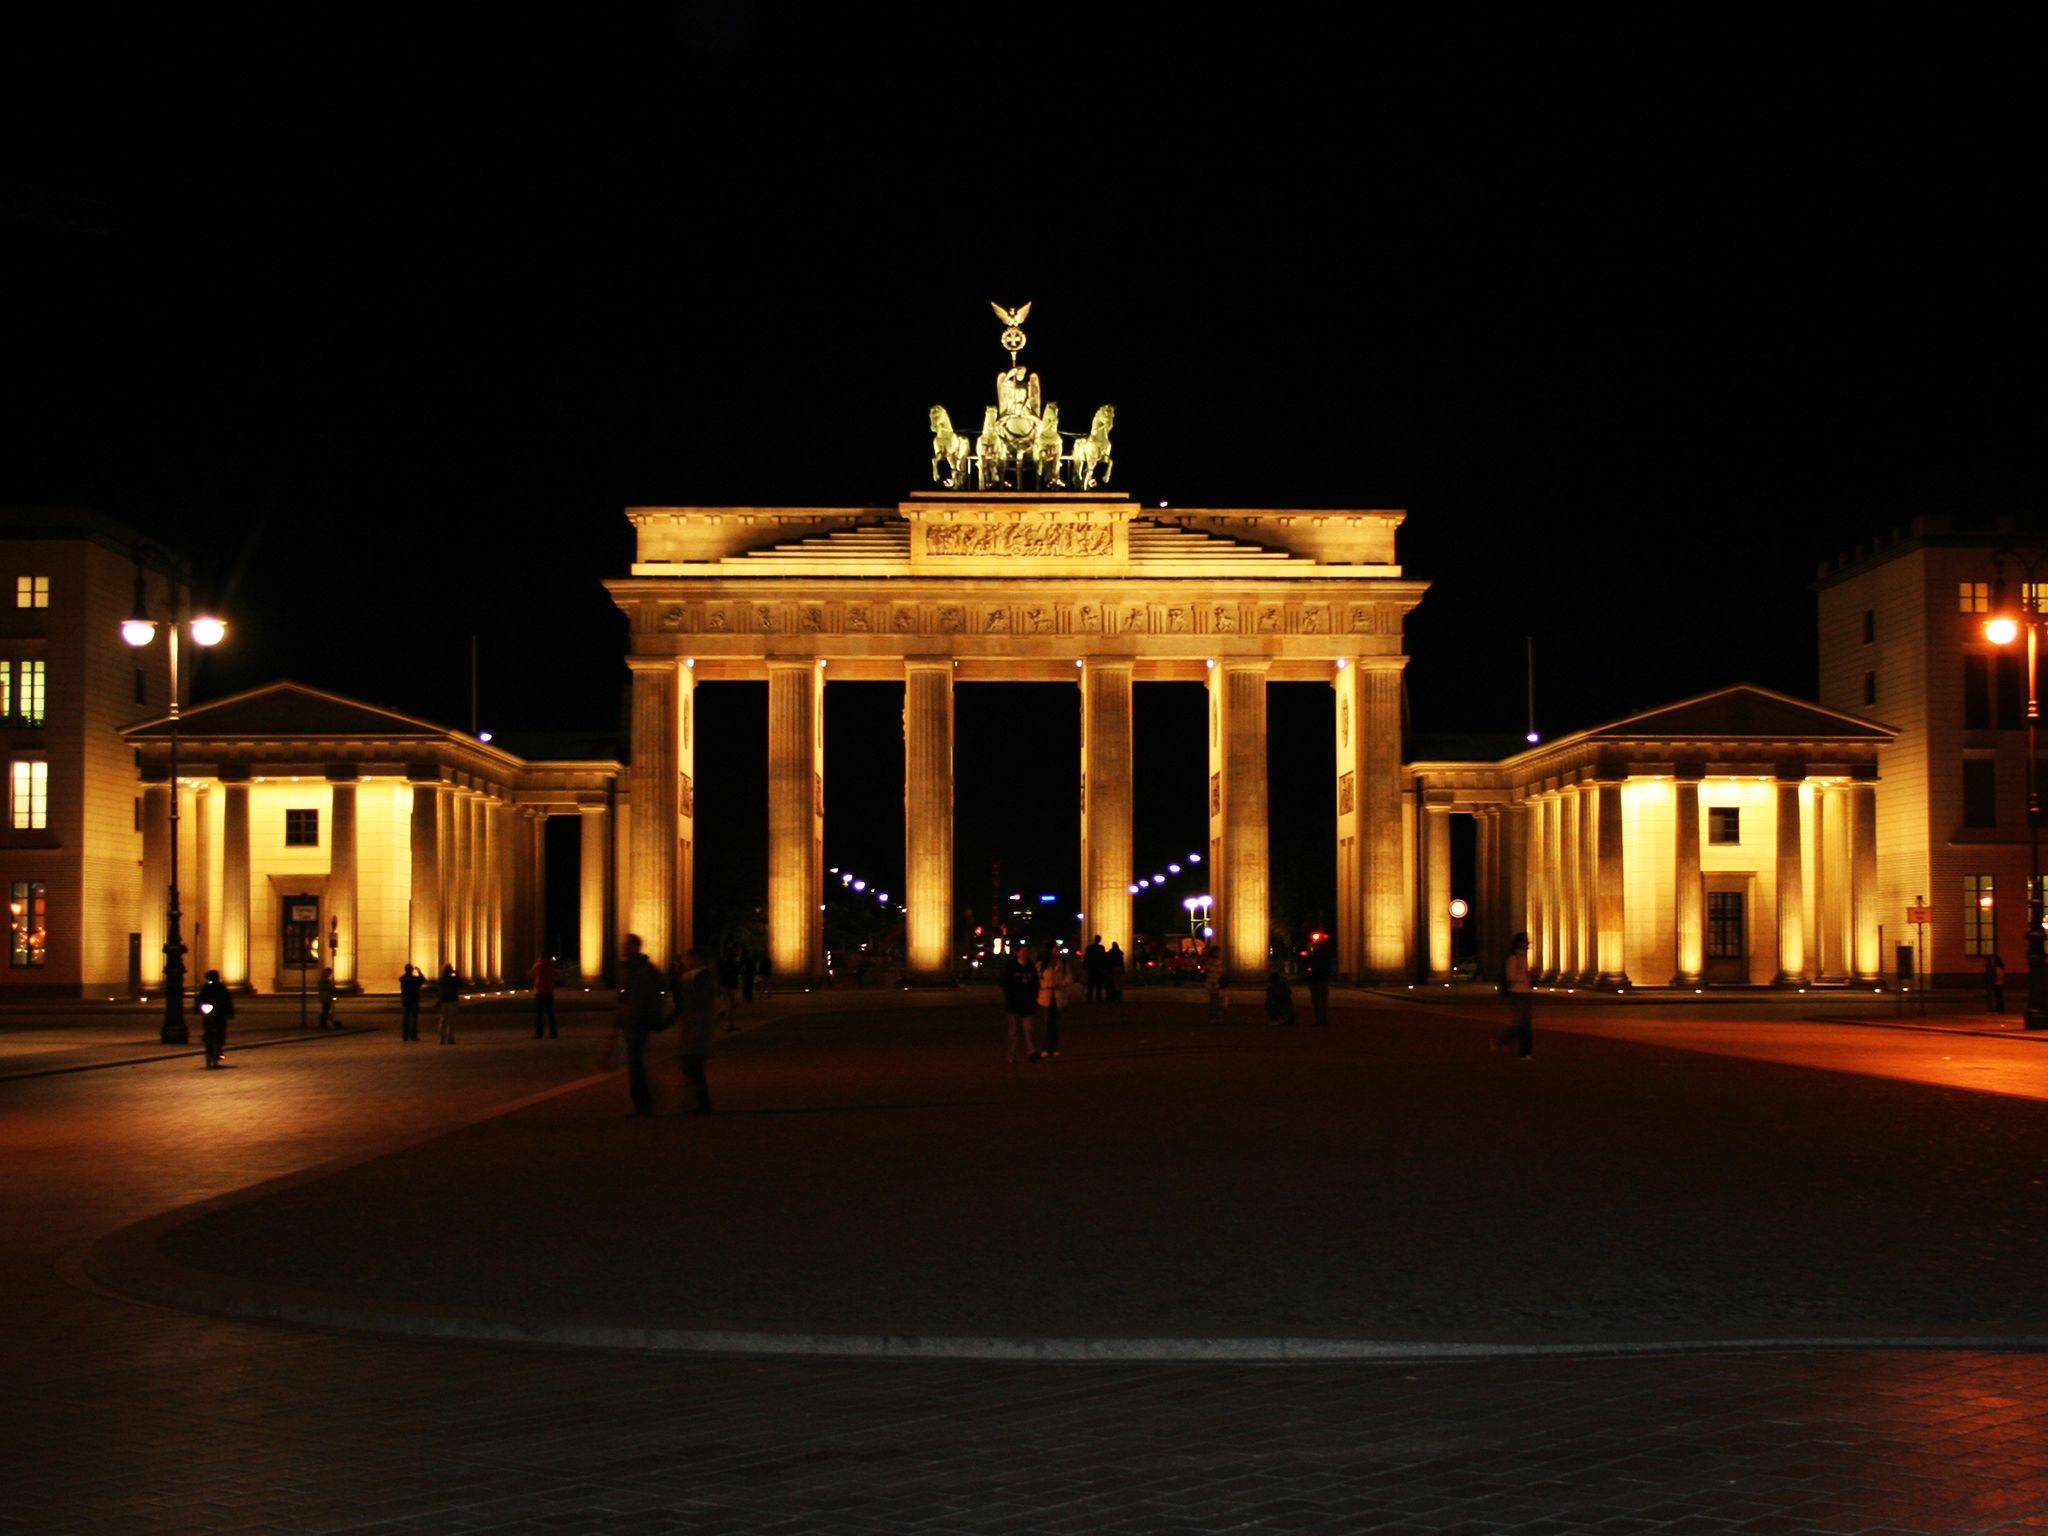 Brandenburg Gate in Berlin at night. This image is from Hasselhoff vs. The Berlin Wall. [Photo of the day - نوامبر 2014]